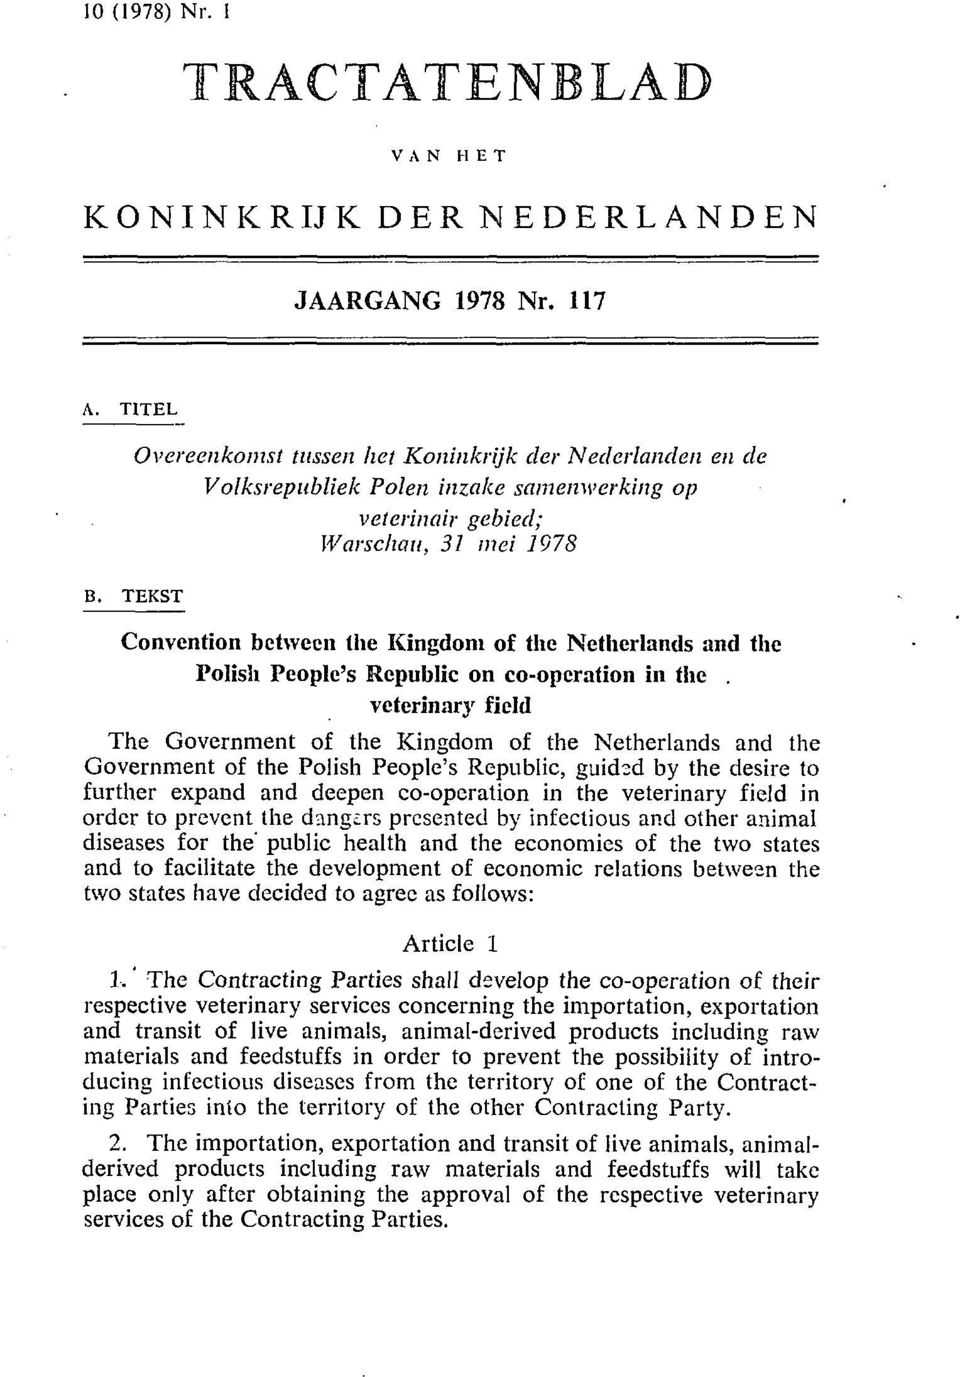 and the Polish People's Republic on co-operation in the.